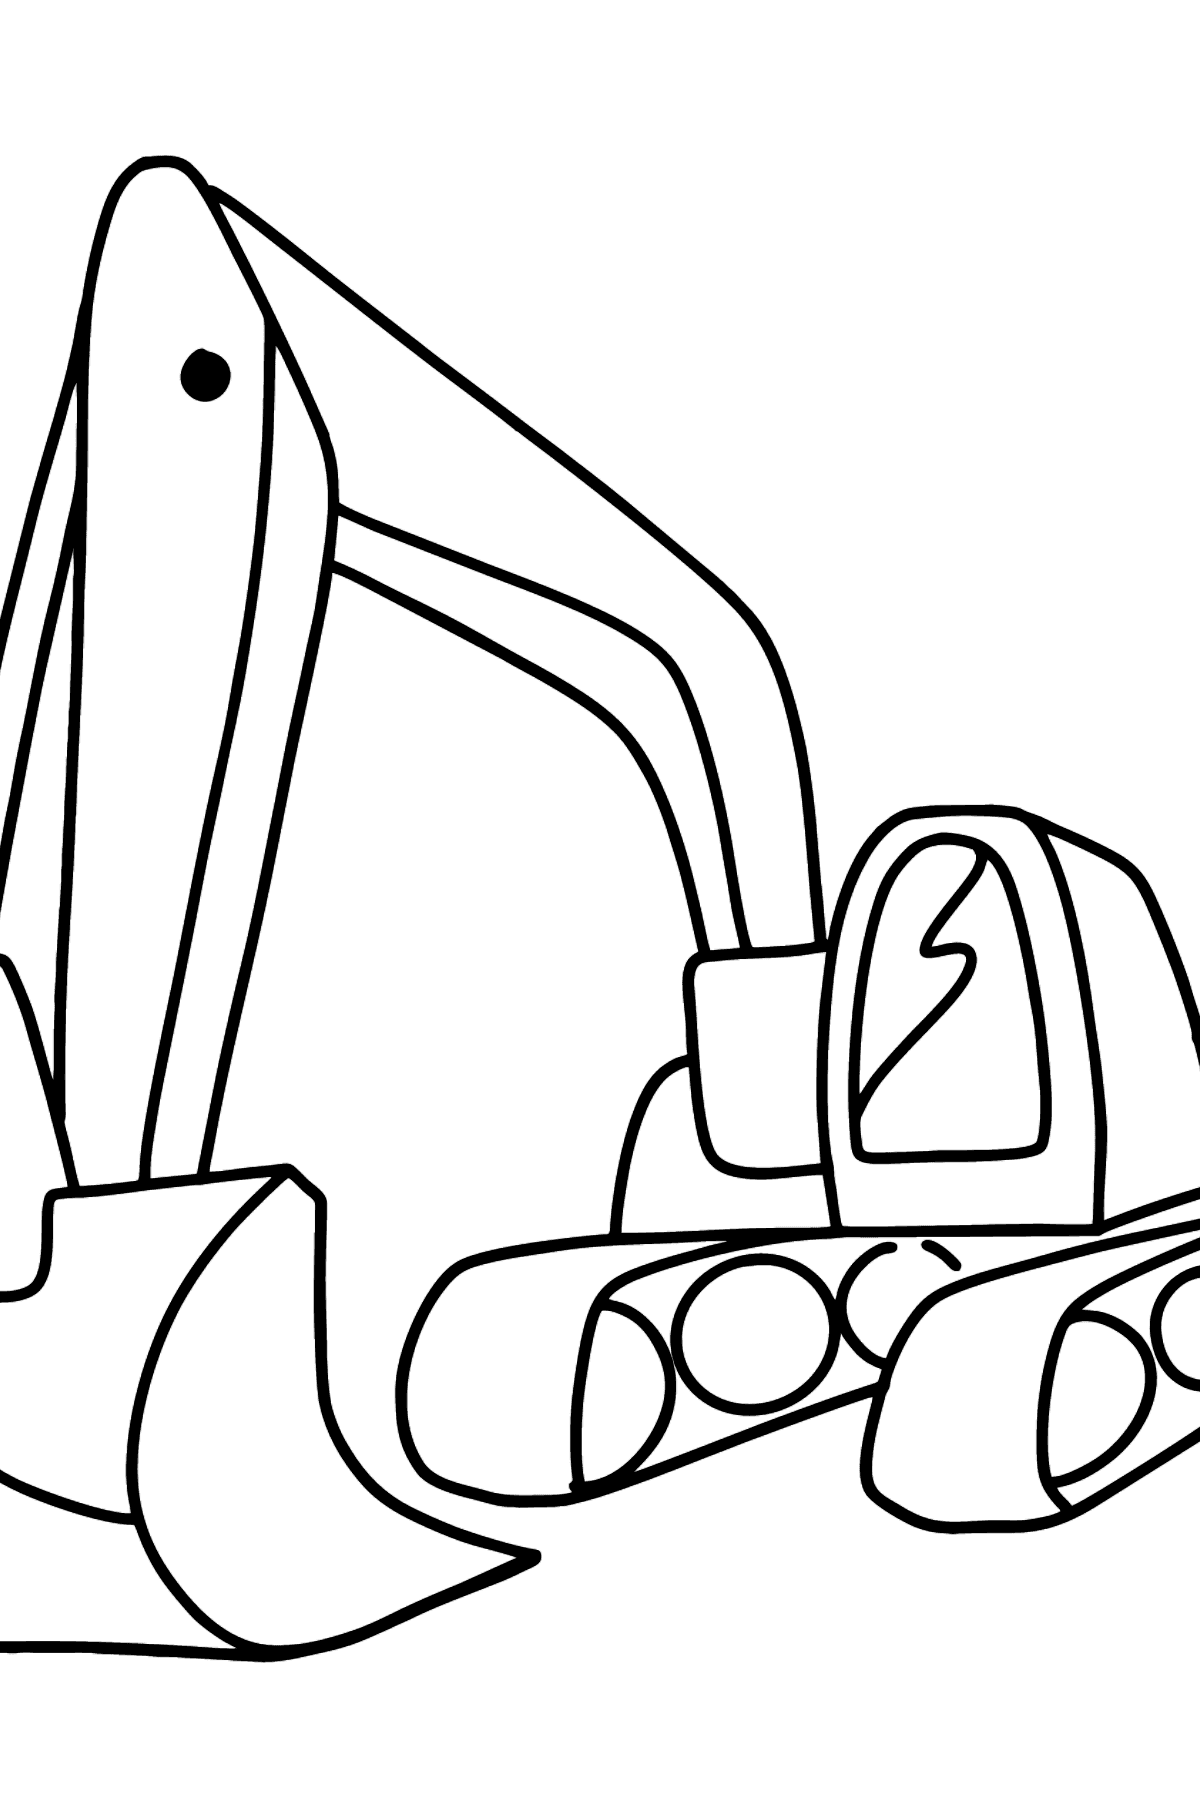 Tractor Excavator coloring page - Coloring Pages for Kids